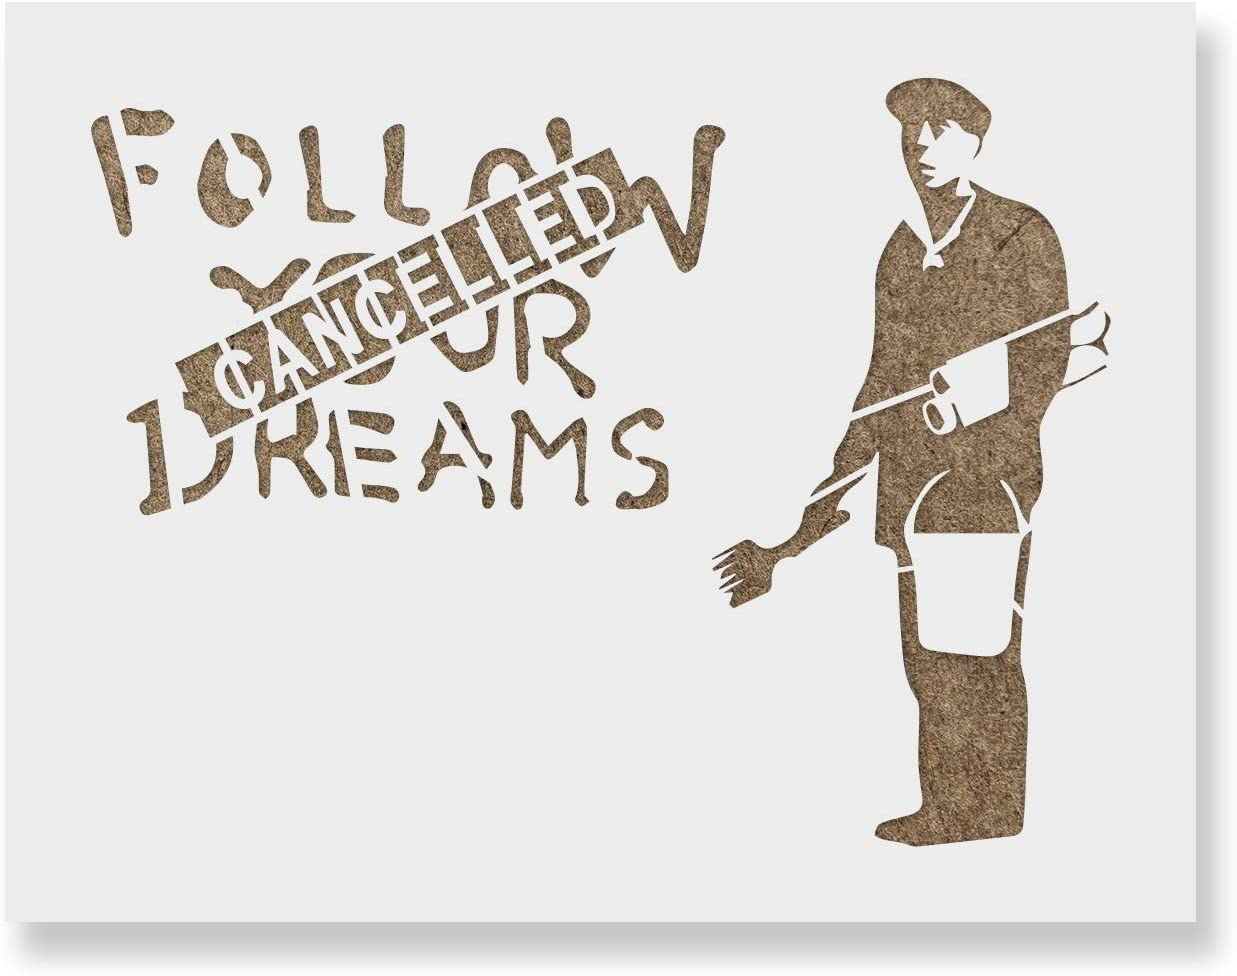 Follow Your Dreams Canceled Banksy Reusable Stencils Stencil - f Al sold out. Deluxe